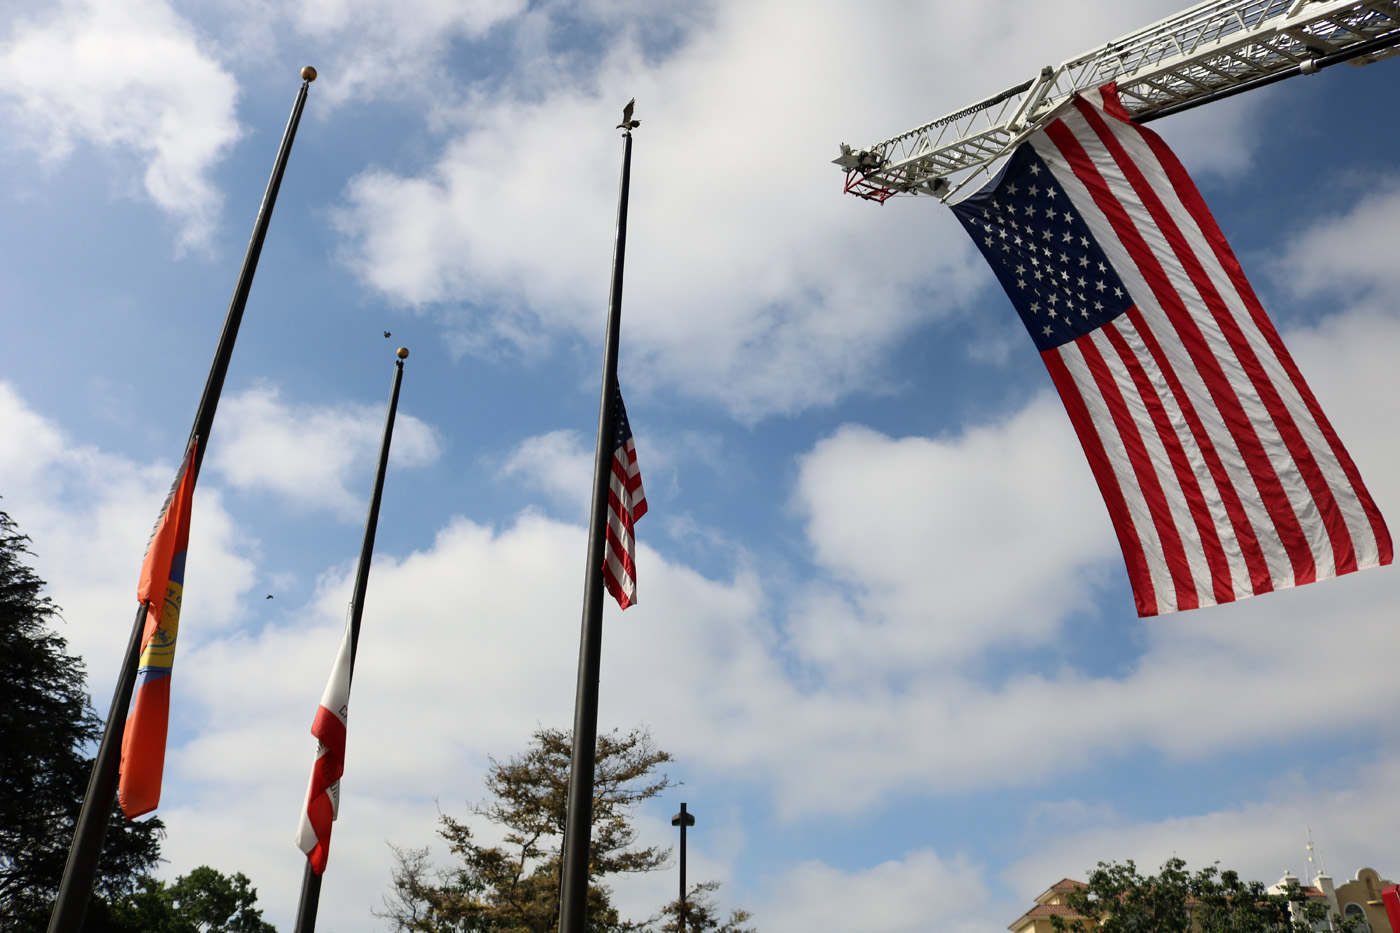 The American flag flies at a 9/11 ceremony in Downey. Photo by Alex Dominguez